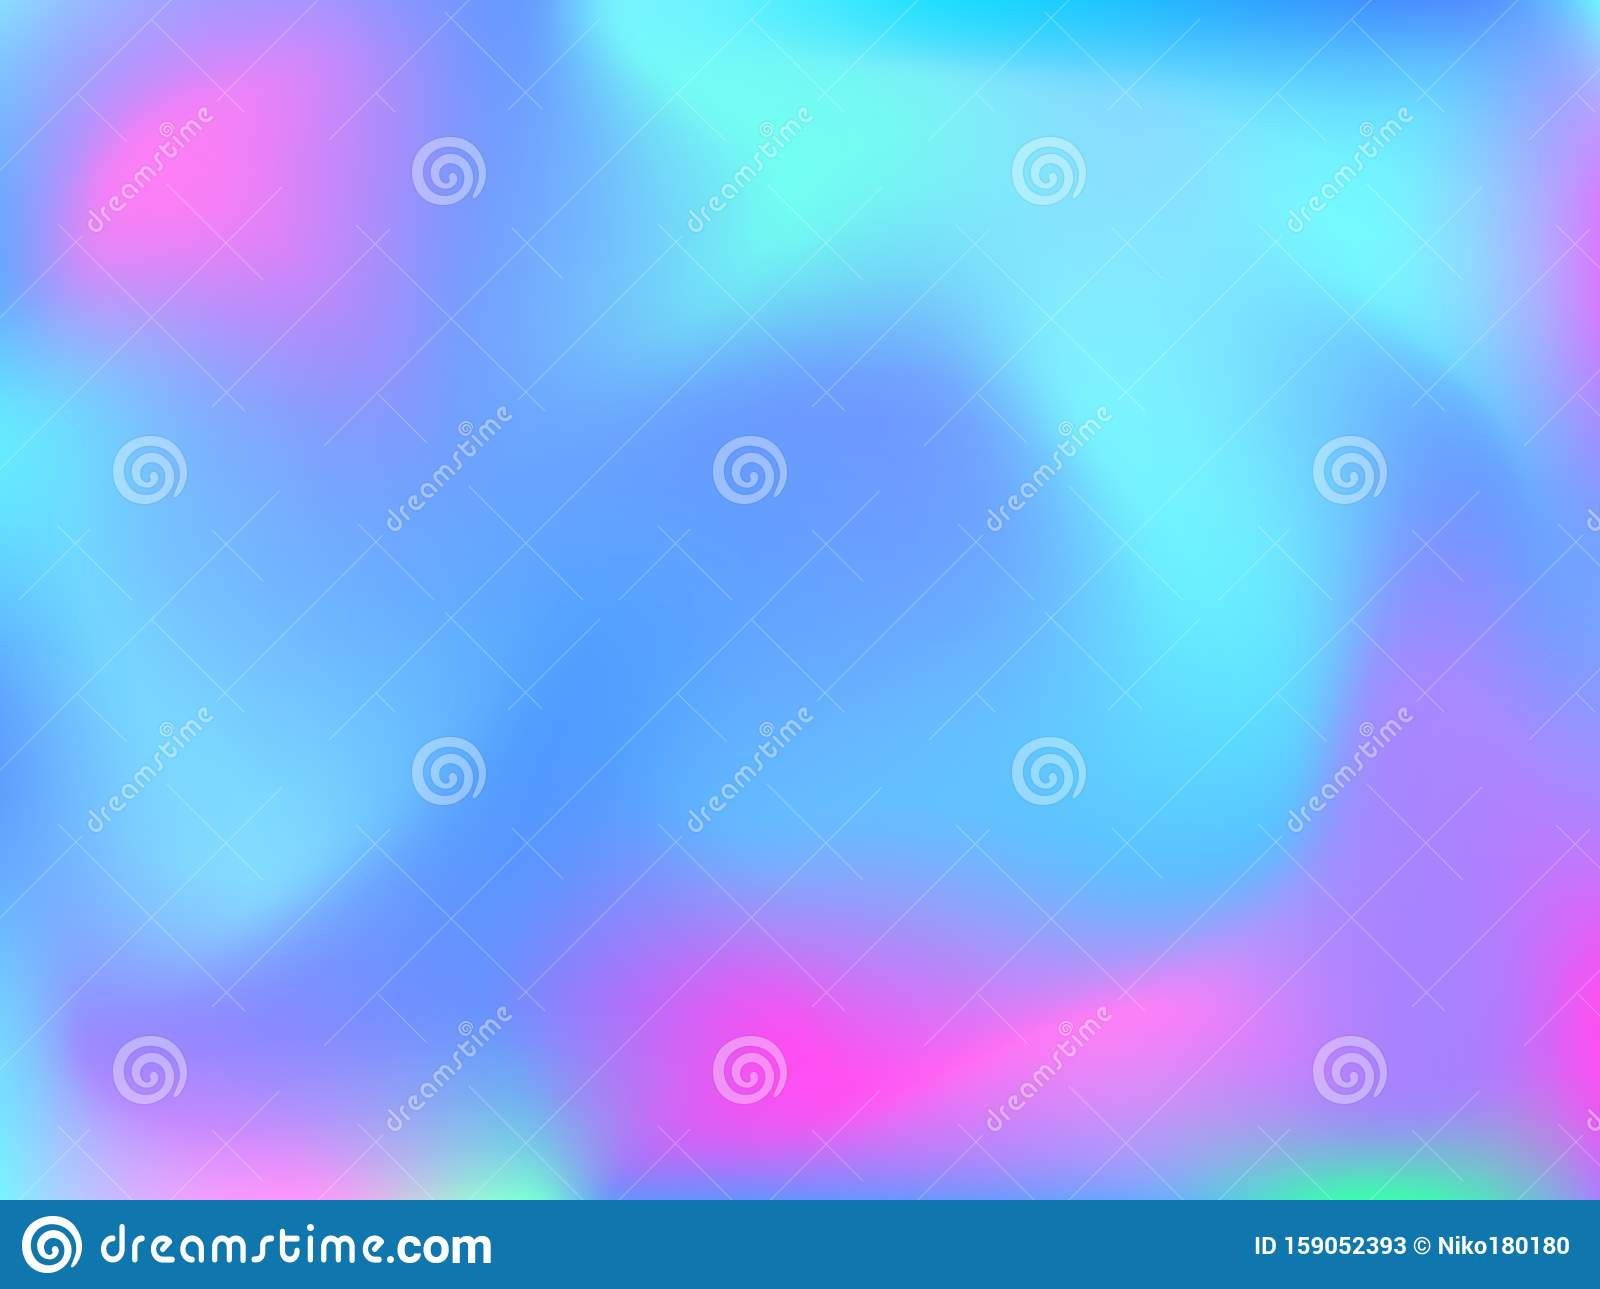 NGradient mesh abstract background.